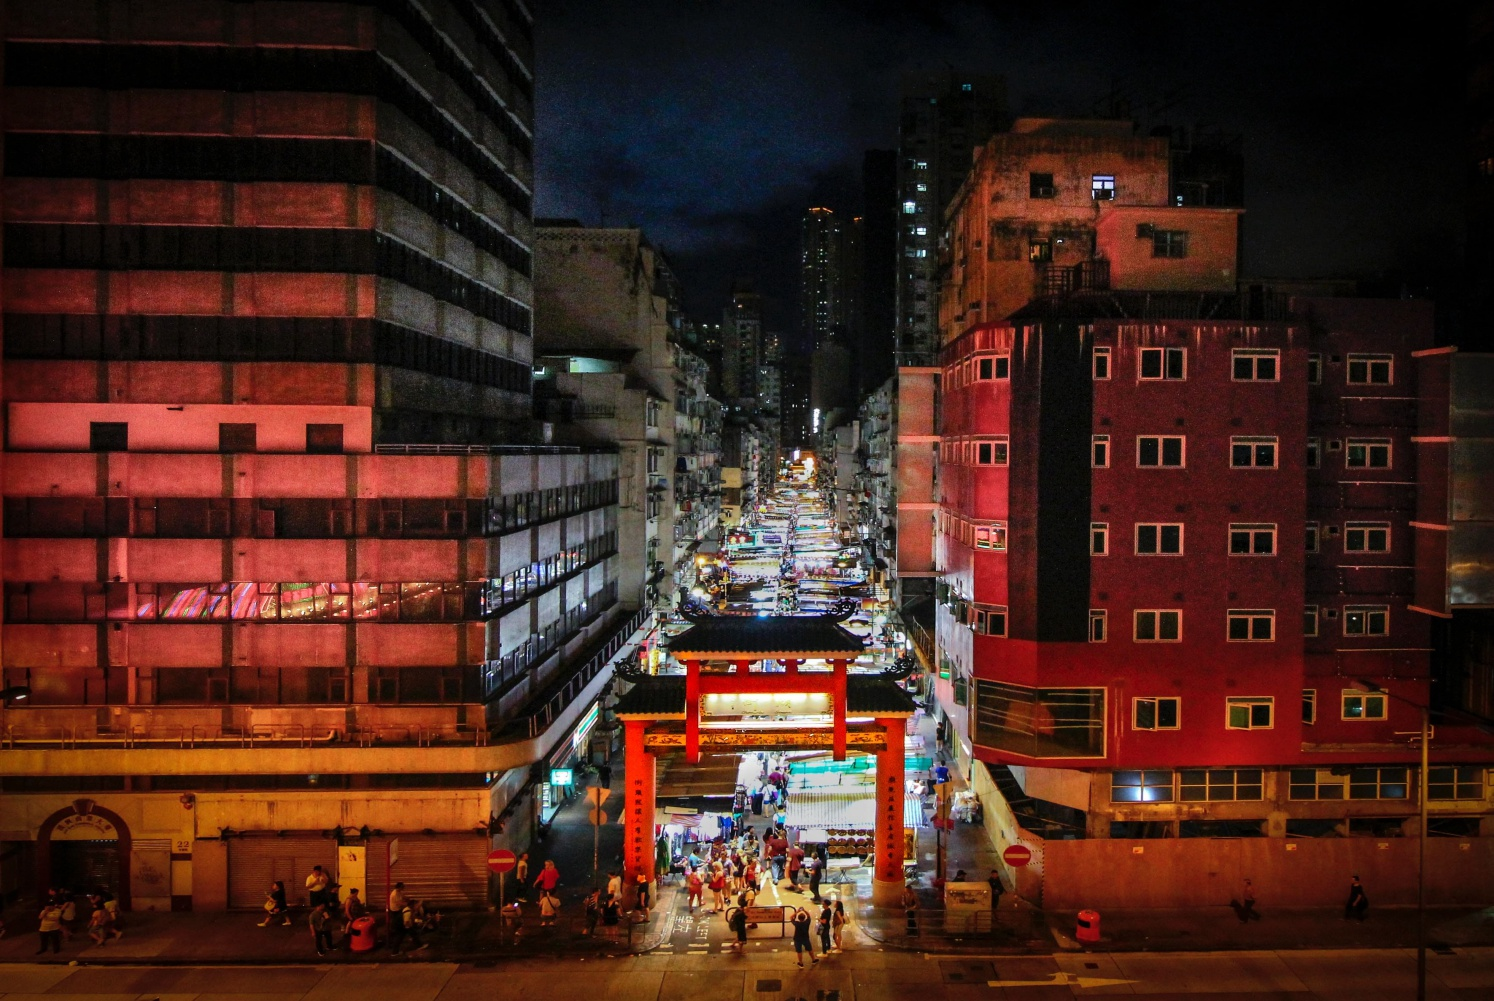 Days 11-12 : Hong Kong & Flying Home - Wind down in Shenzhen's neighbour, Hong Kong. Whether shopping or sightseeing takes your fancy, Hong Kong has it all in abundance. Be sure to check out one of the famous night markets.